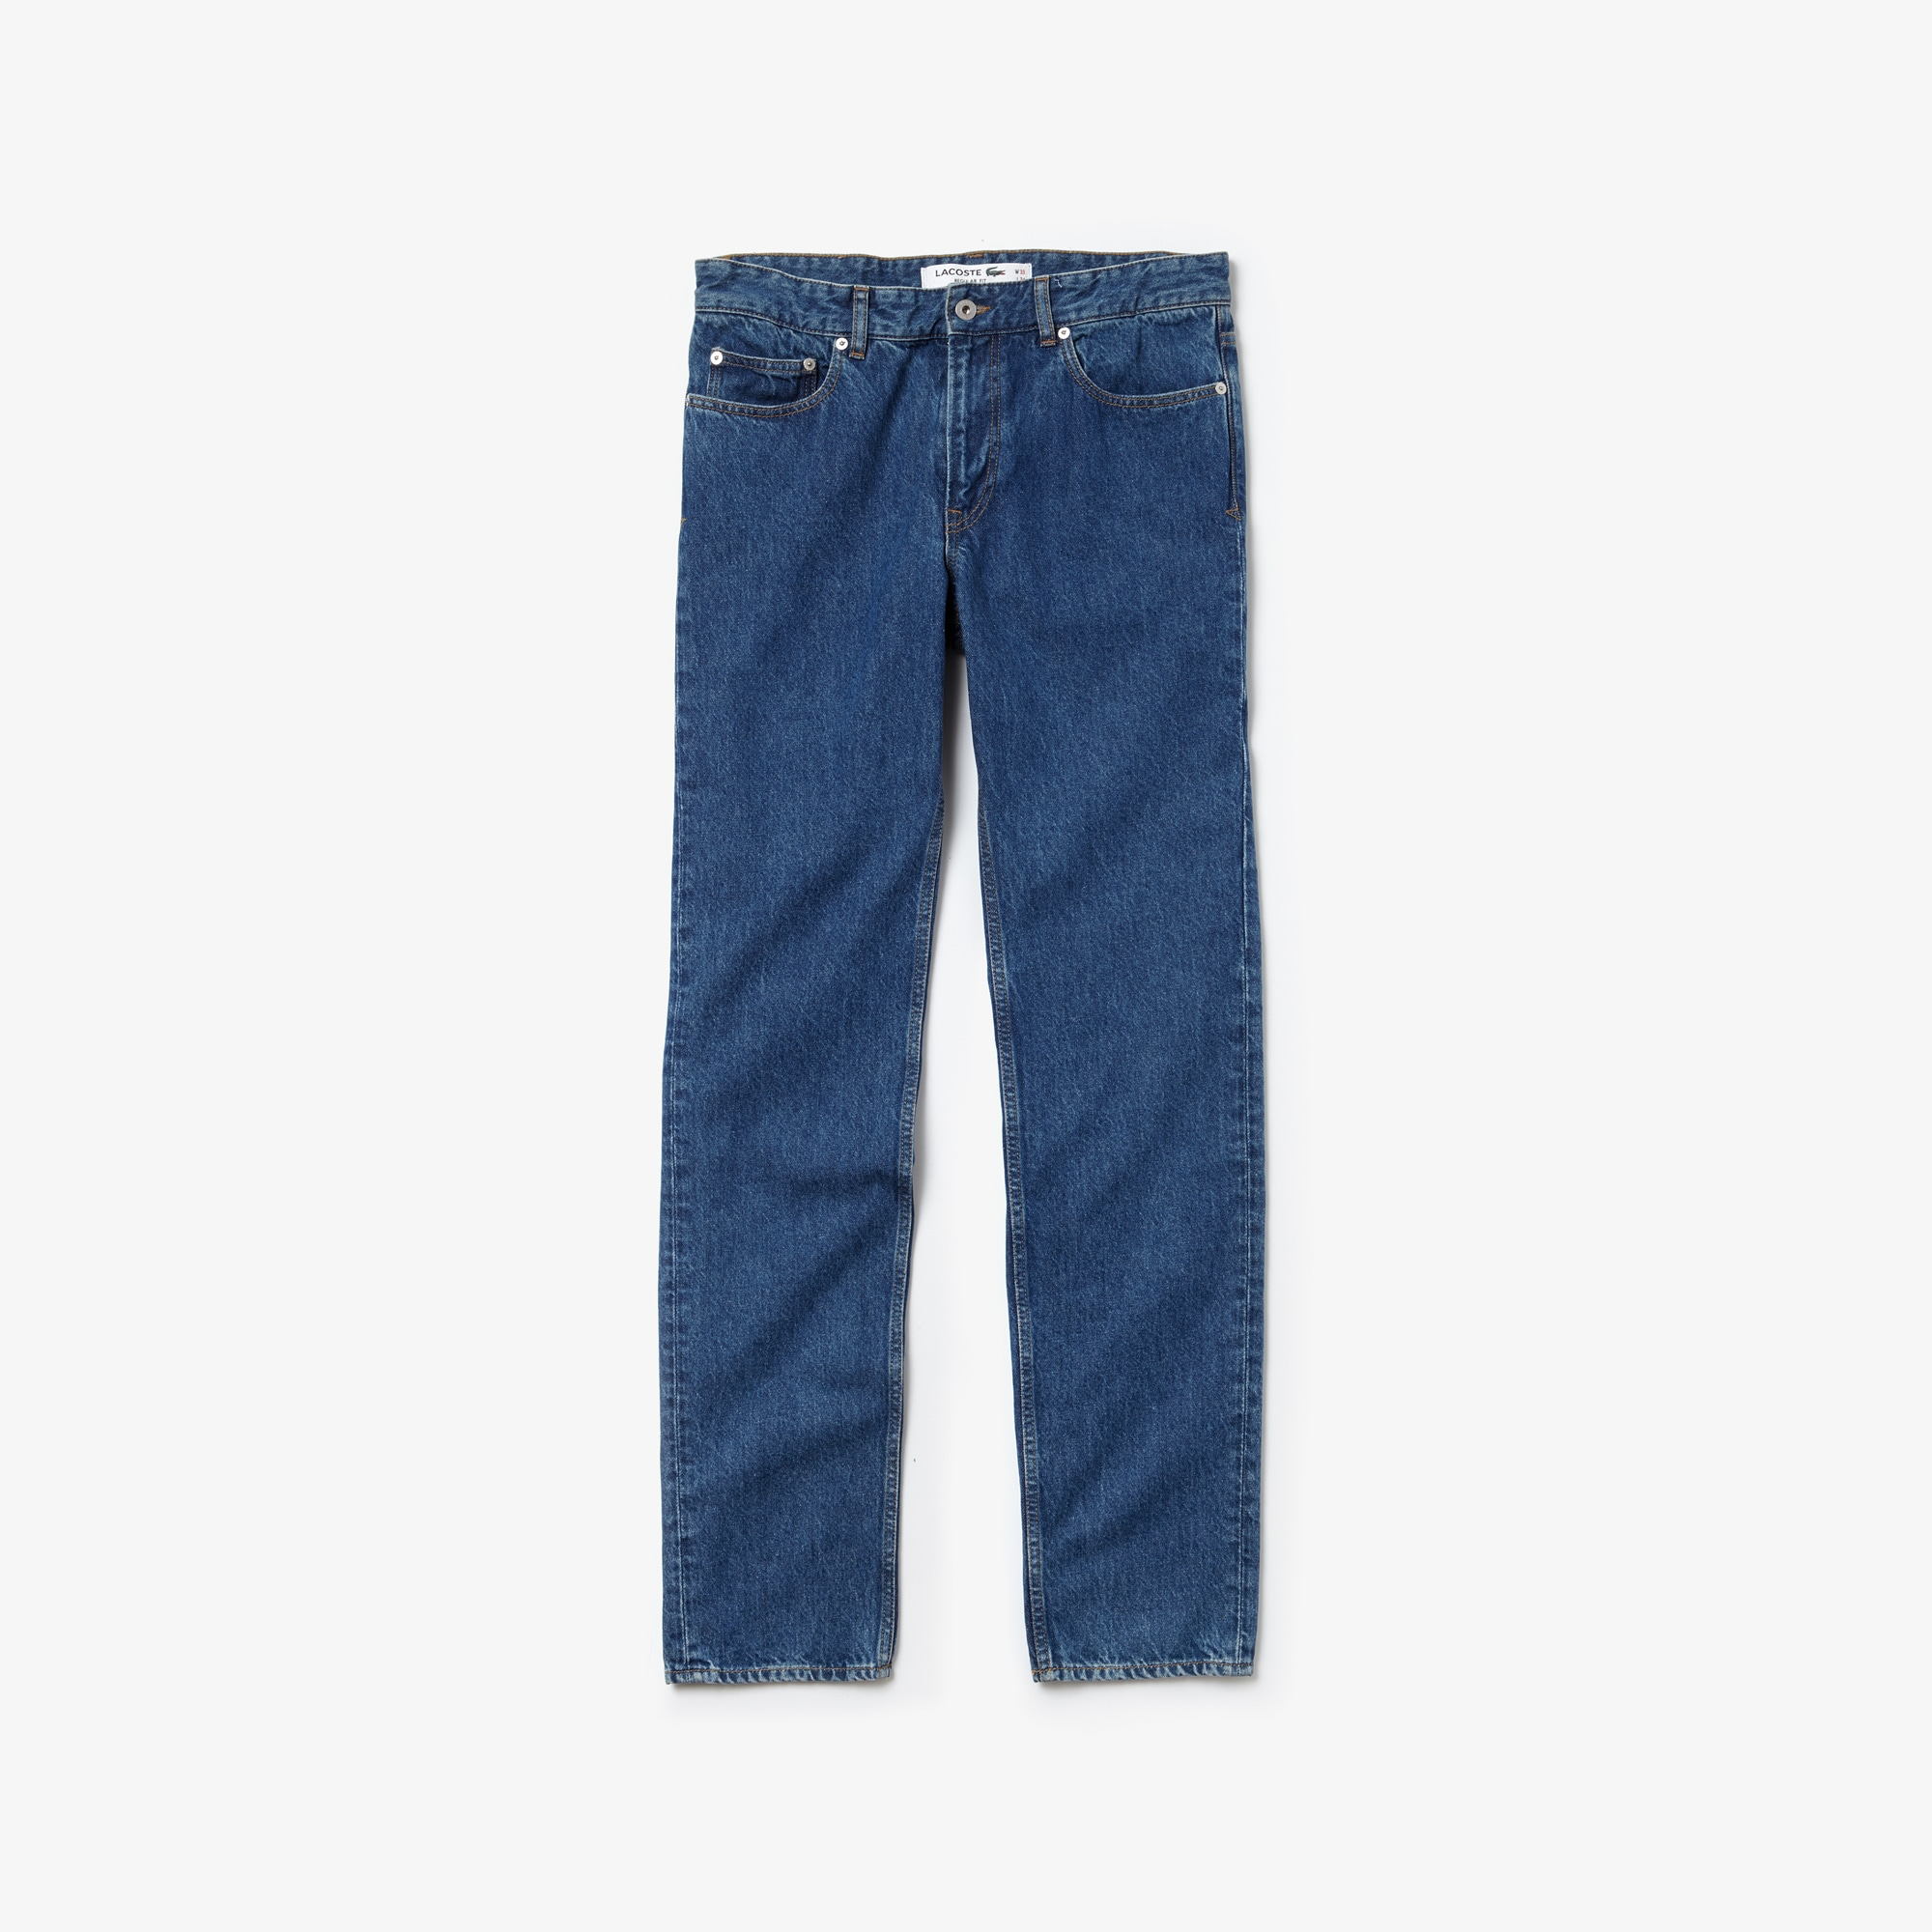 Men's Straight Cut Five-Pocket Cotton Denim Jeans